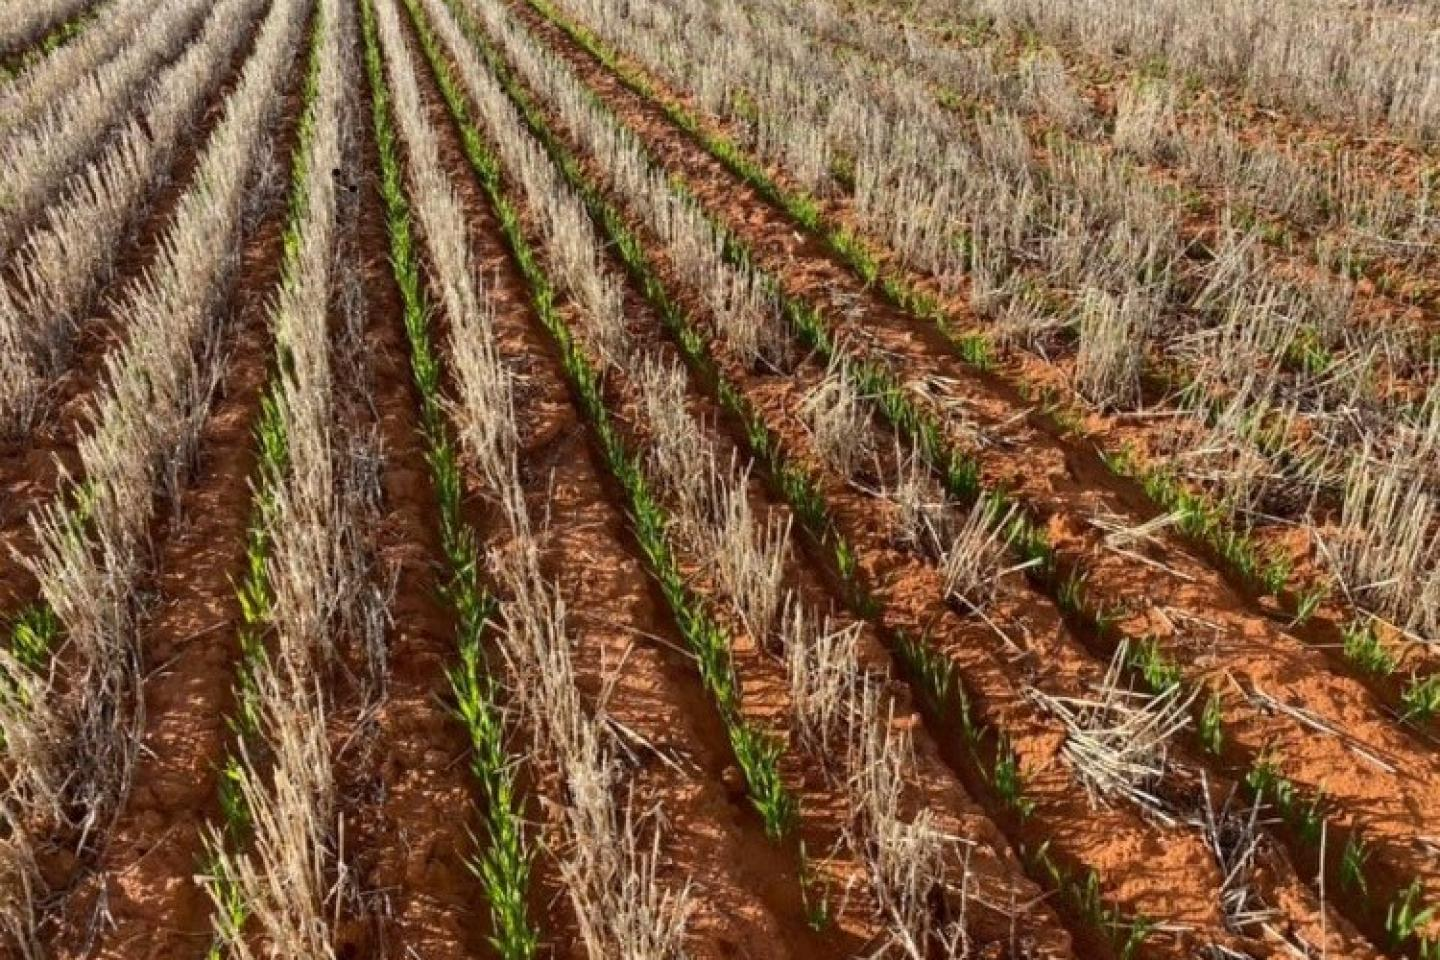 Trialling the hypothesis of near-row sowing is pivotal to Ausplow's BioFurrow crop establishment system.